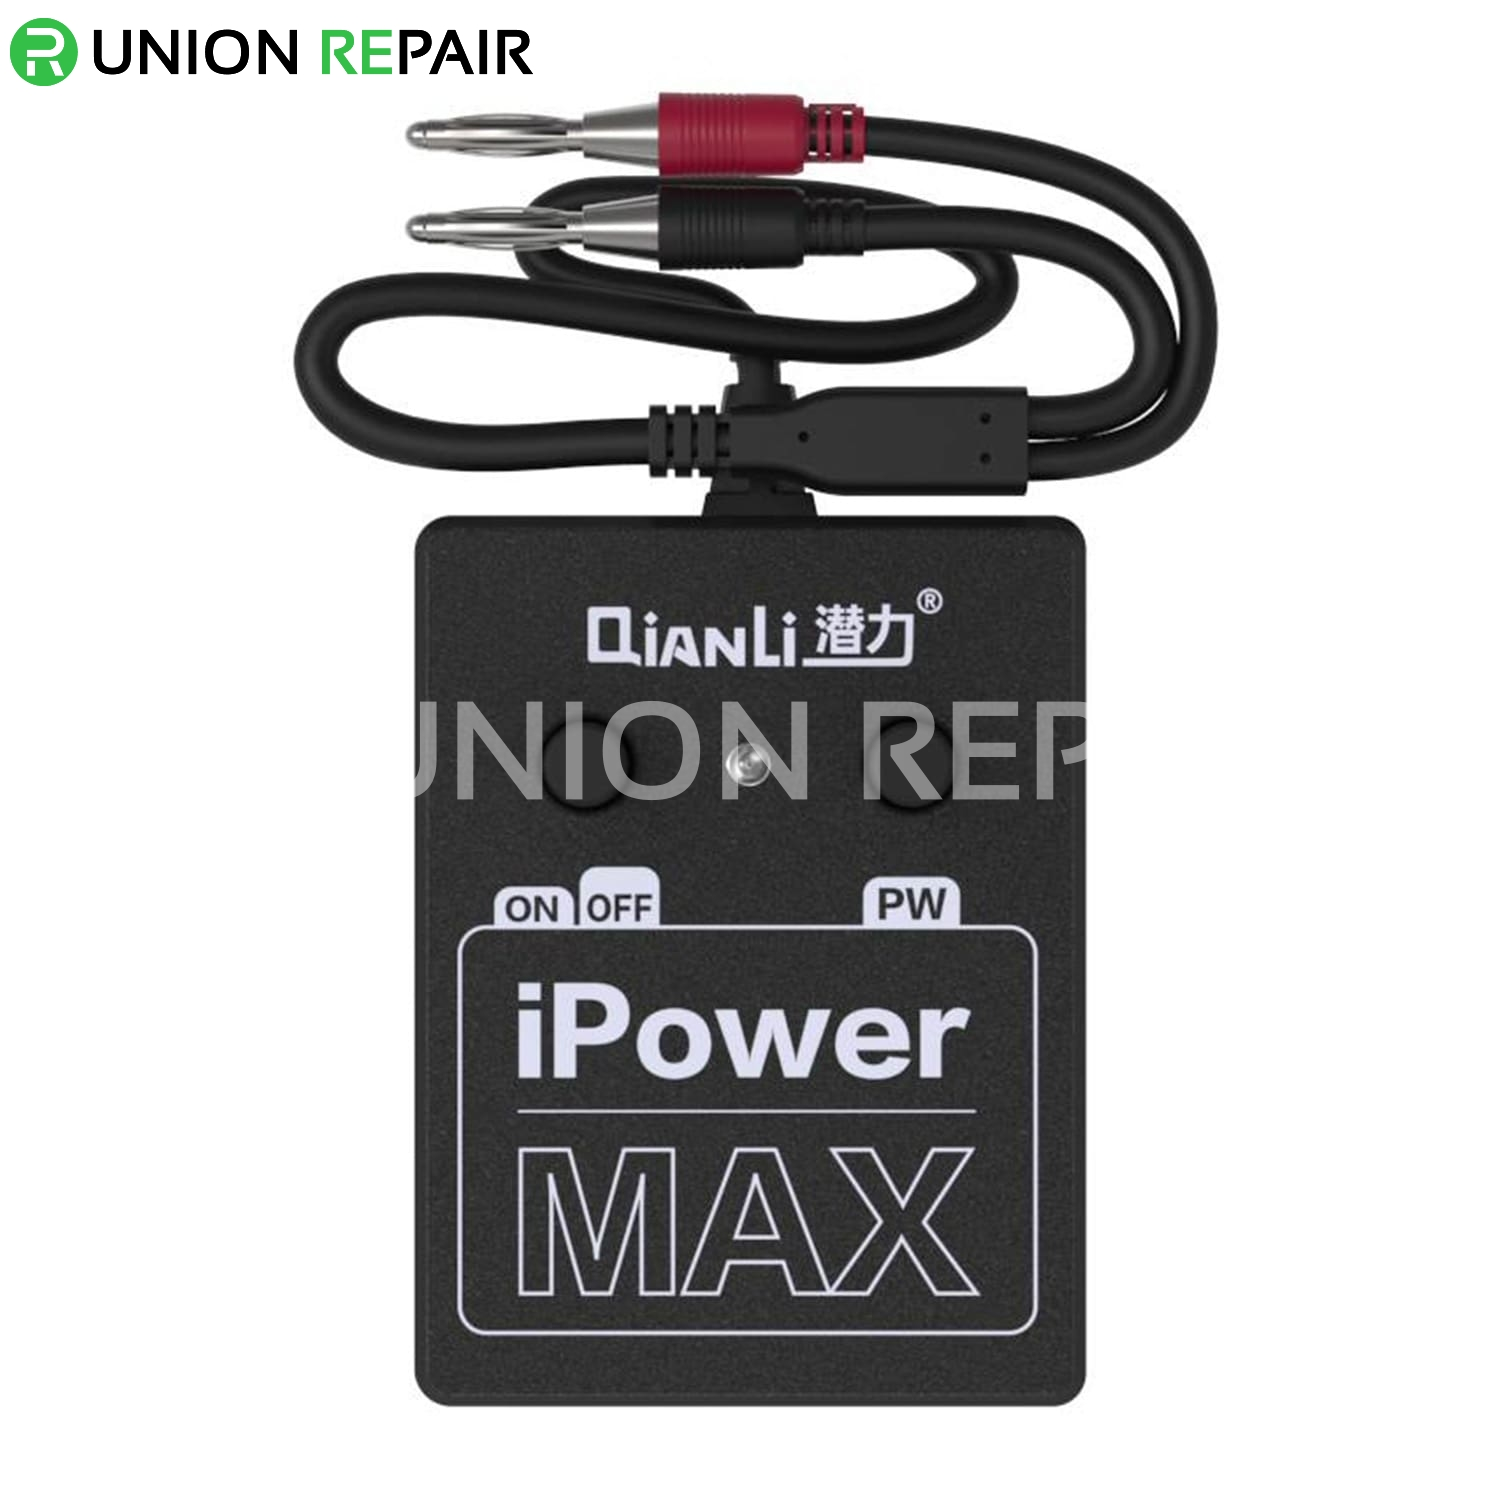 small resolution of 17192 qianli toolplus power line with on off switch ipower max 1 jpg t 1559808754